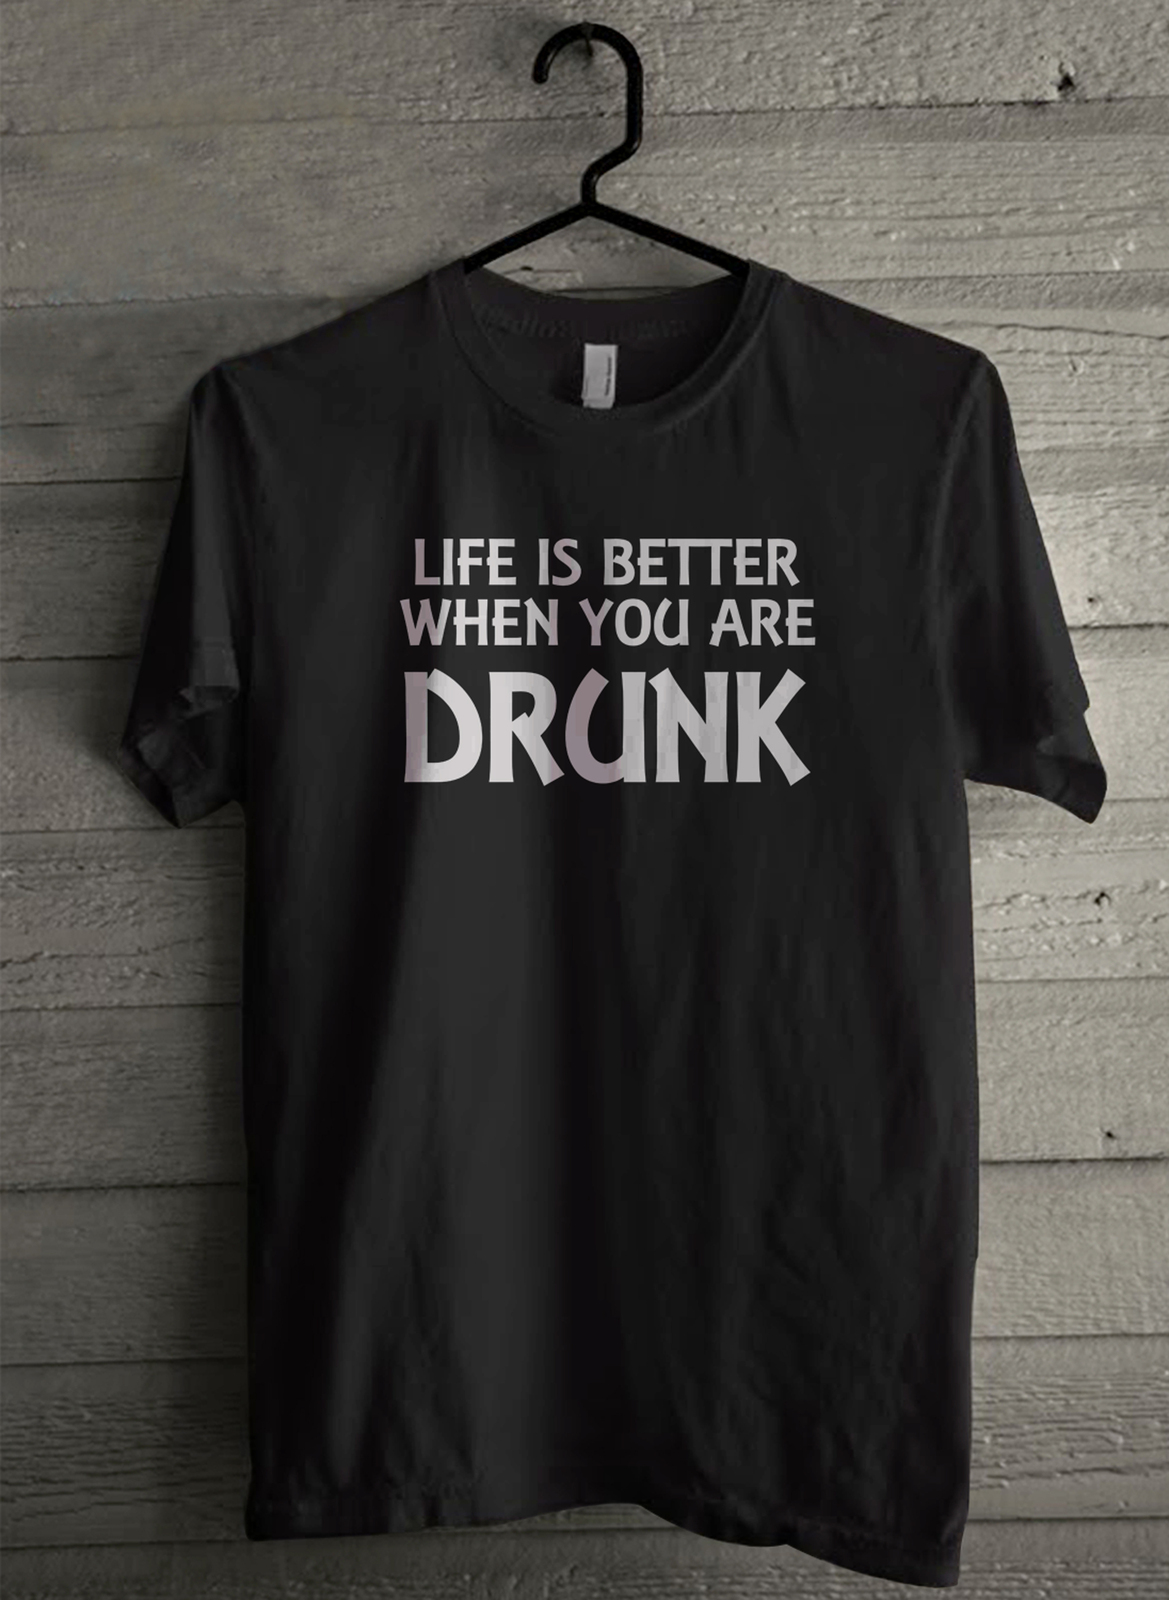 Life is better when you are drunk